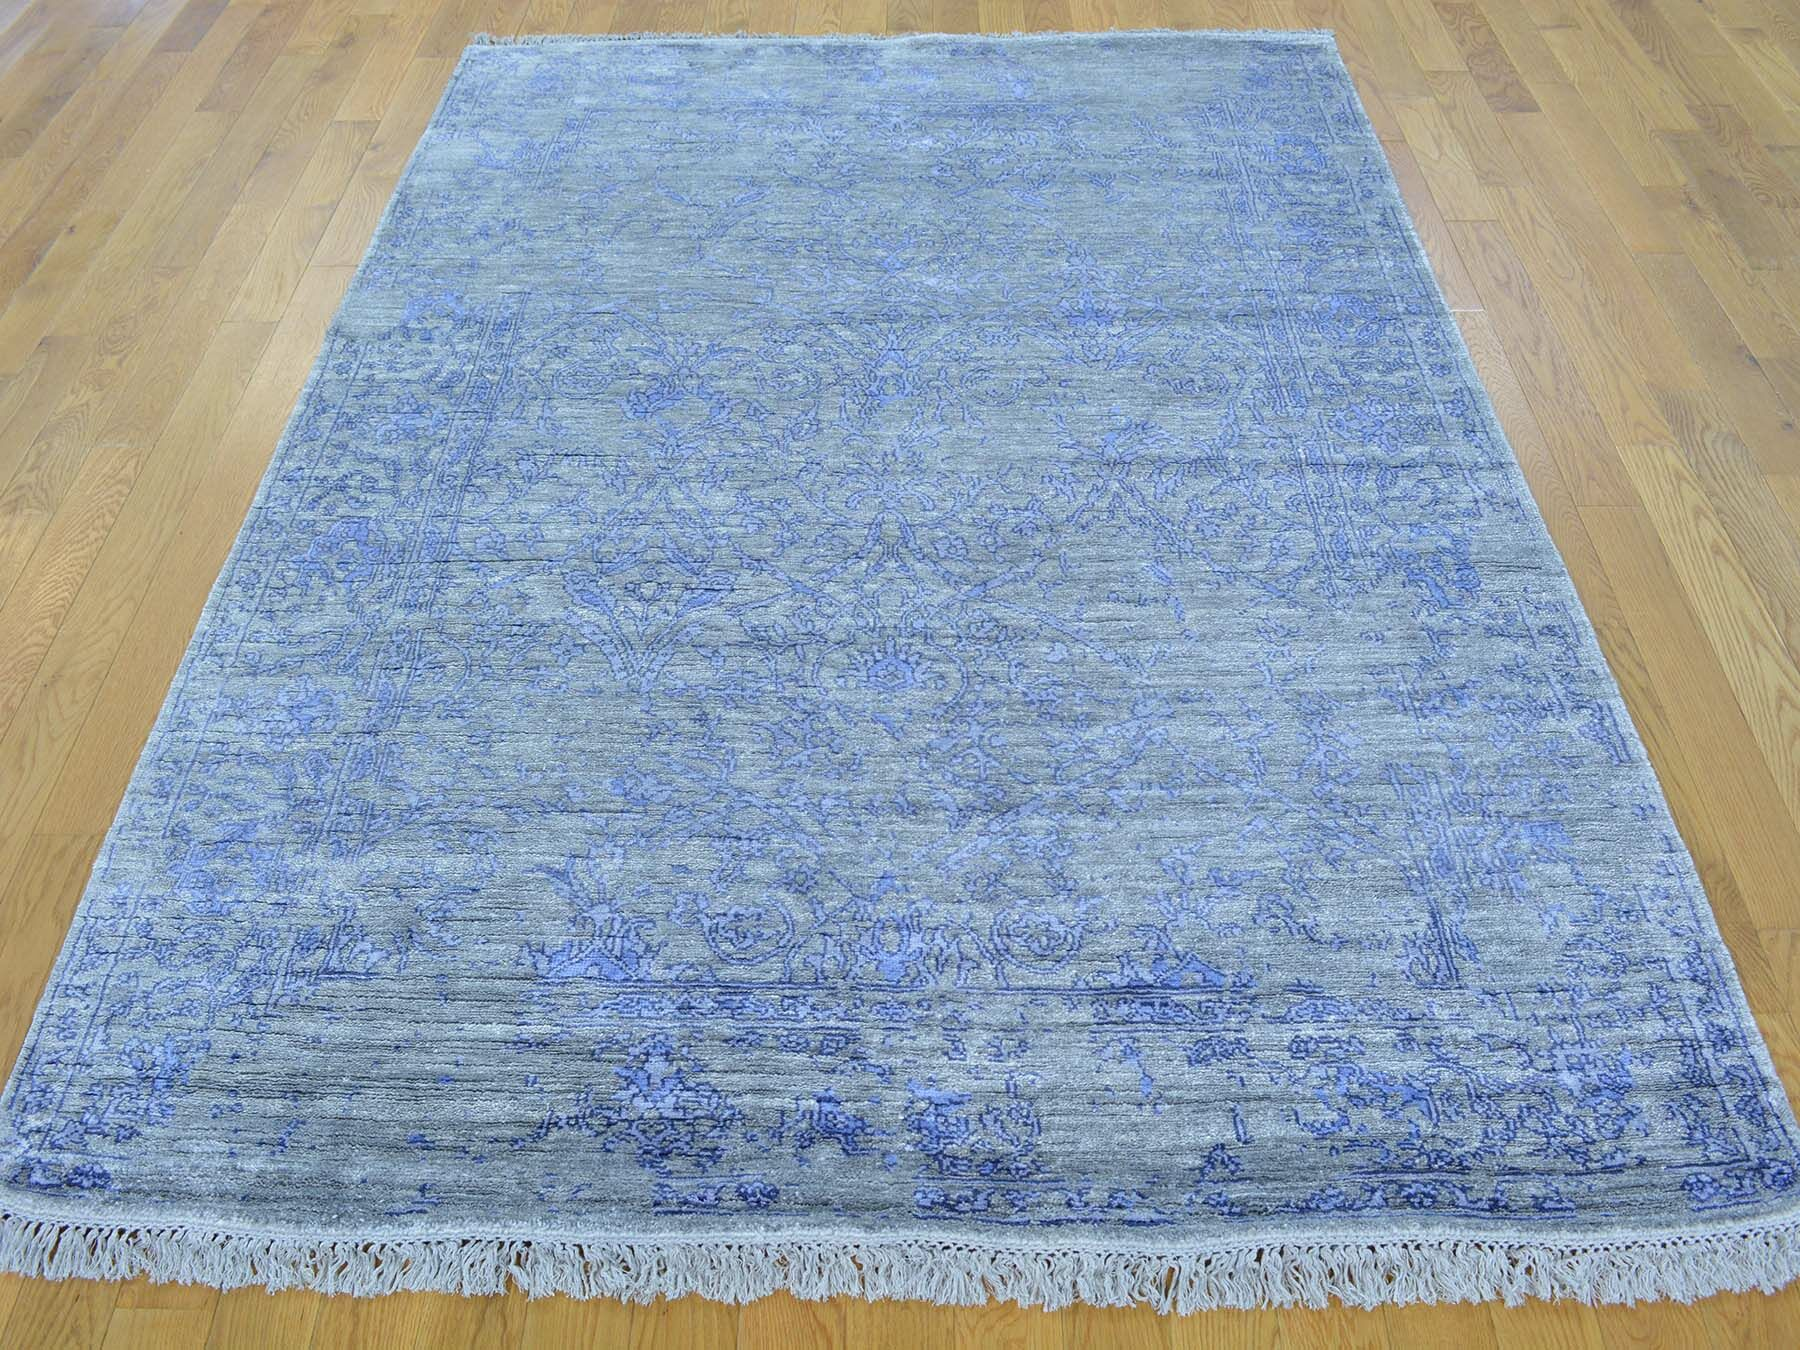 One-of-a-Kind Brewster Art Silver Broken Design Handwoven Grey Silk Area Rug